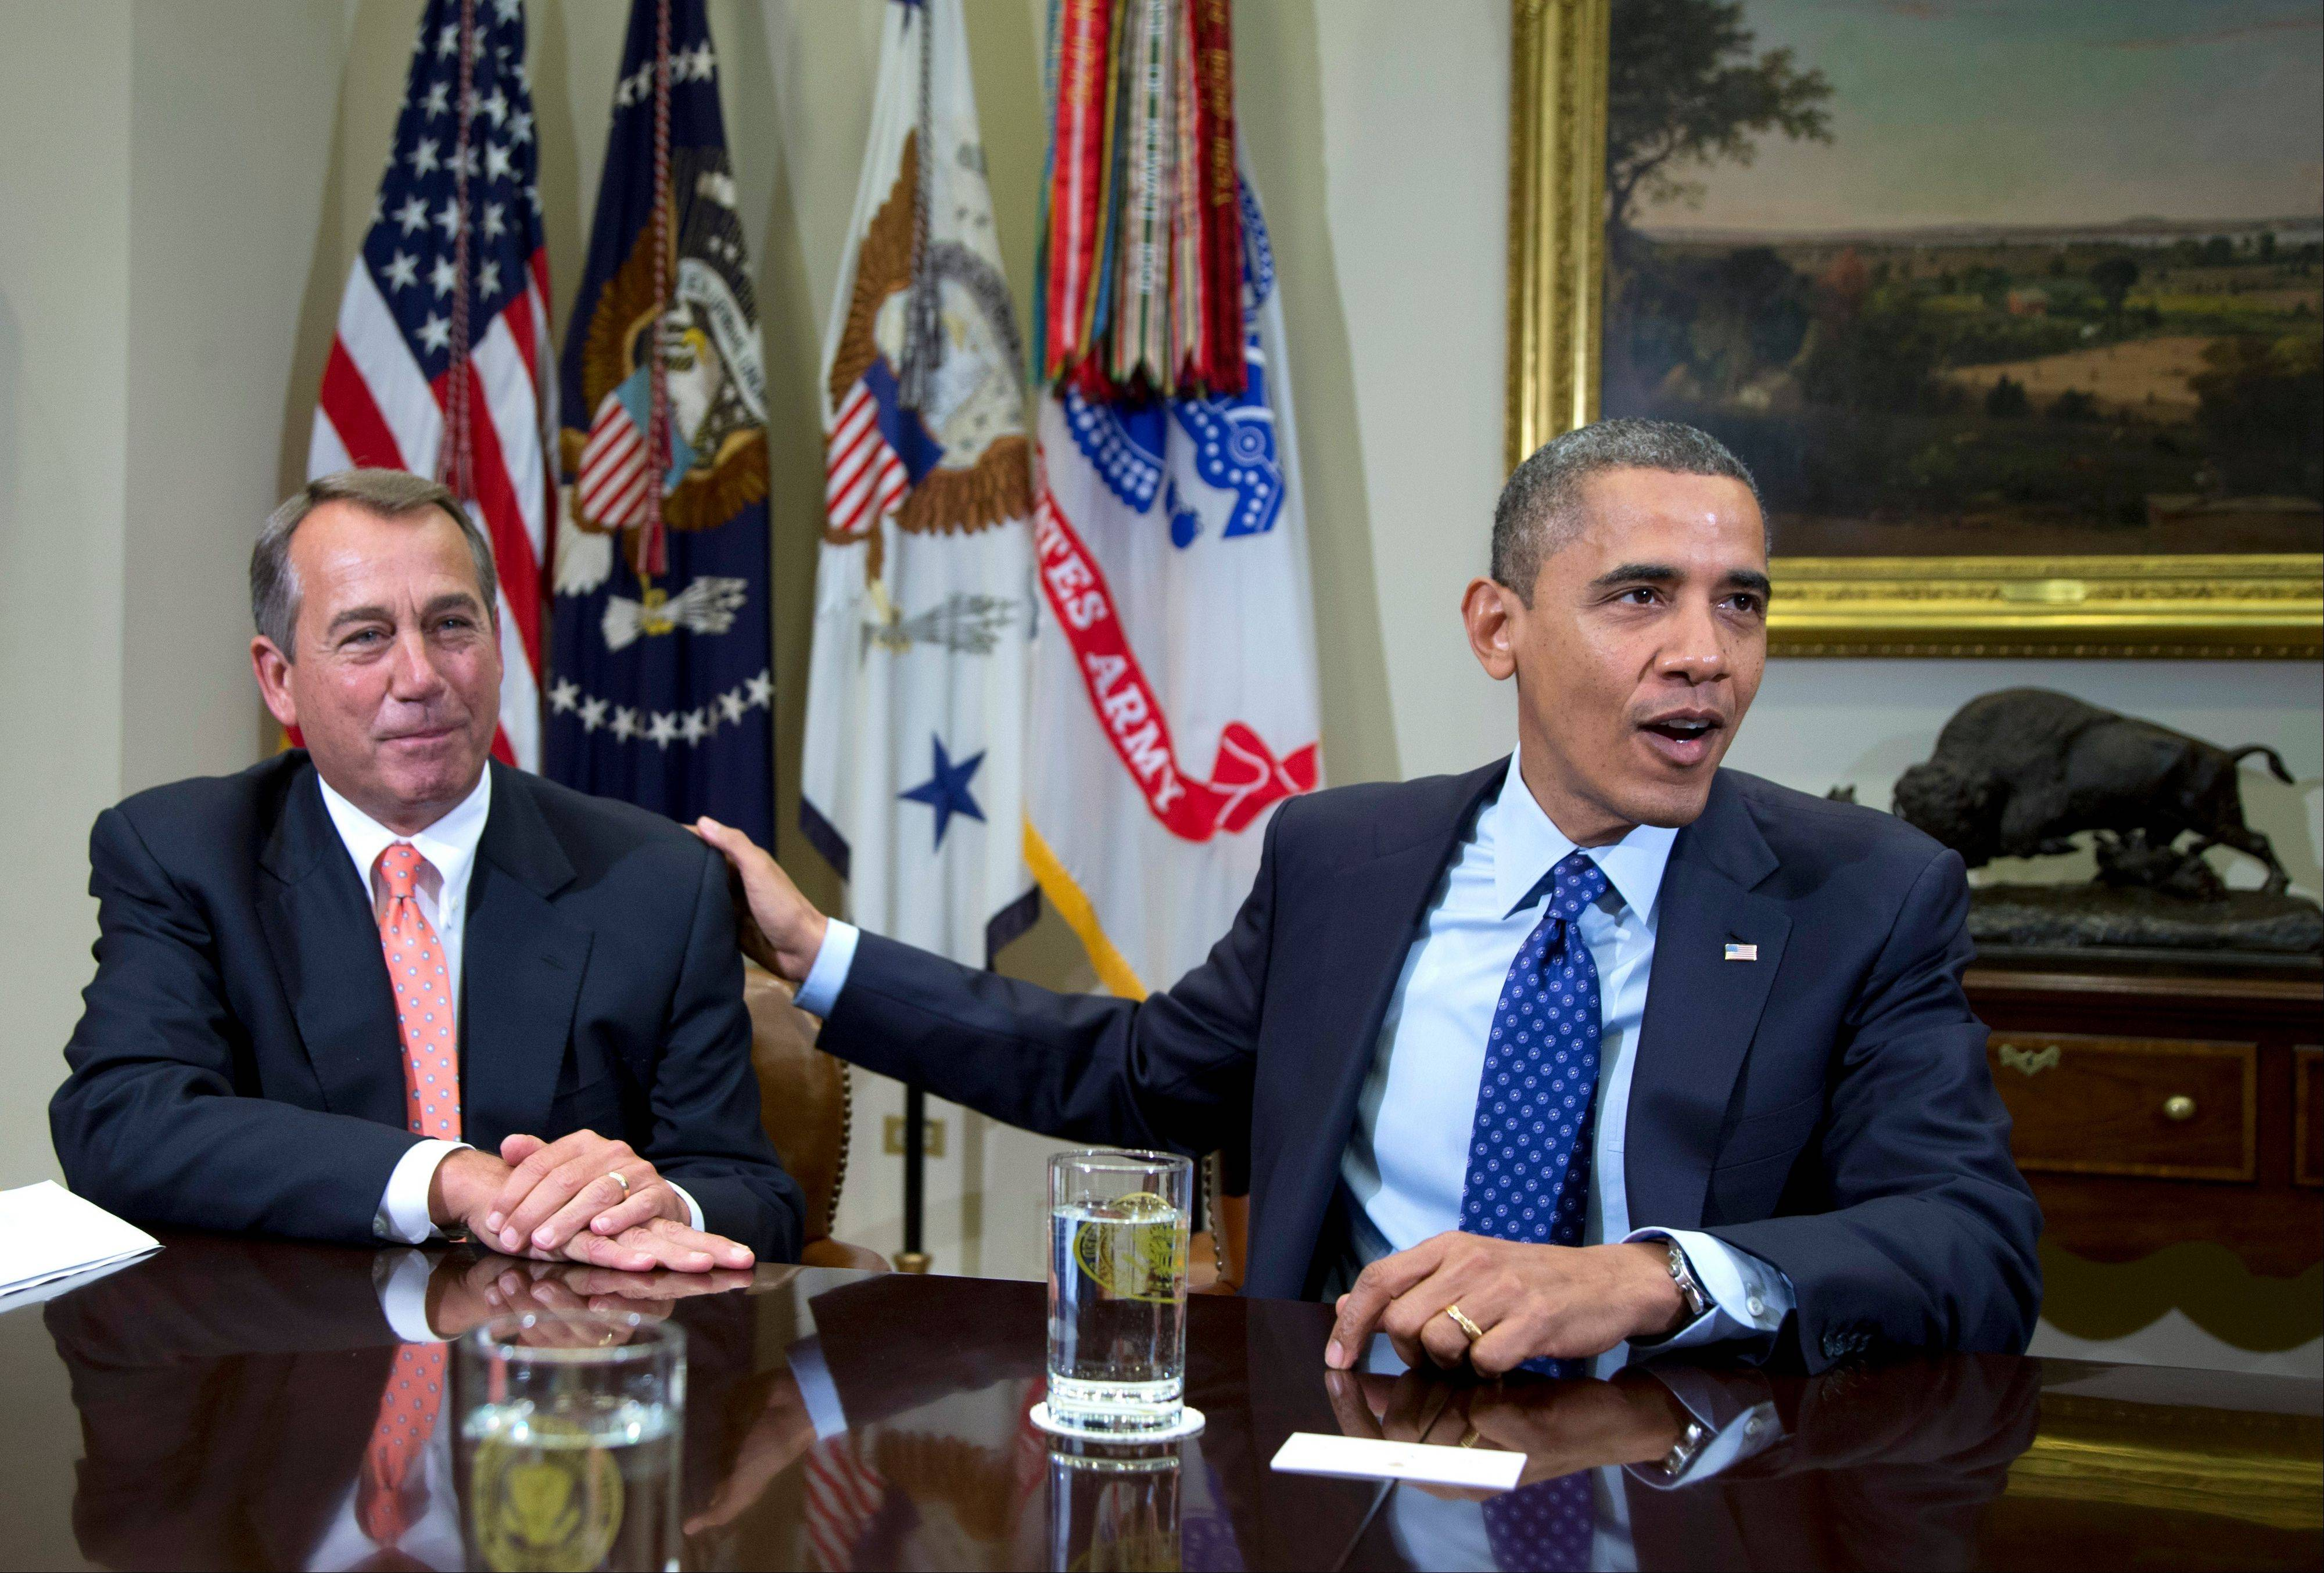 President Barack Obama and House Speaker John Boehner, seen here together on Nov. 16, met Sunday at the White House to discuss the ongoing negotiations over the impeding �fiscal cliff.�